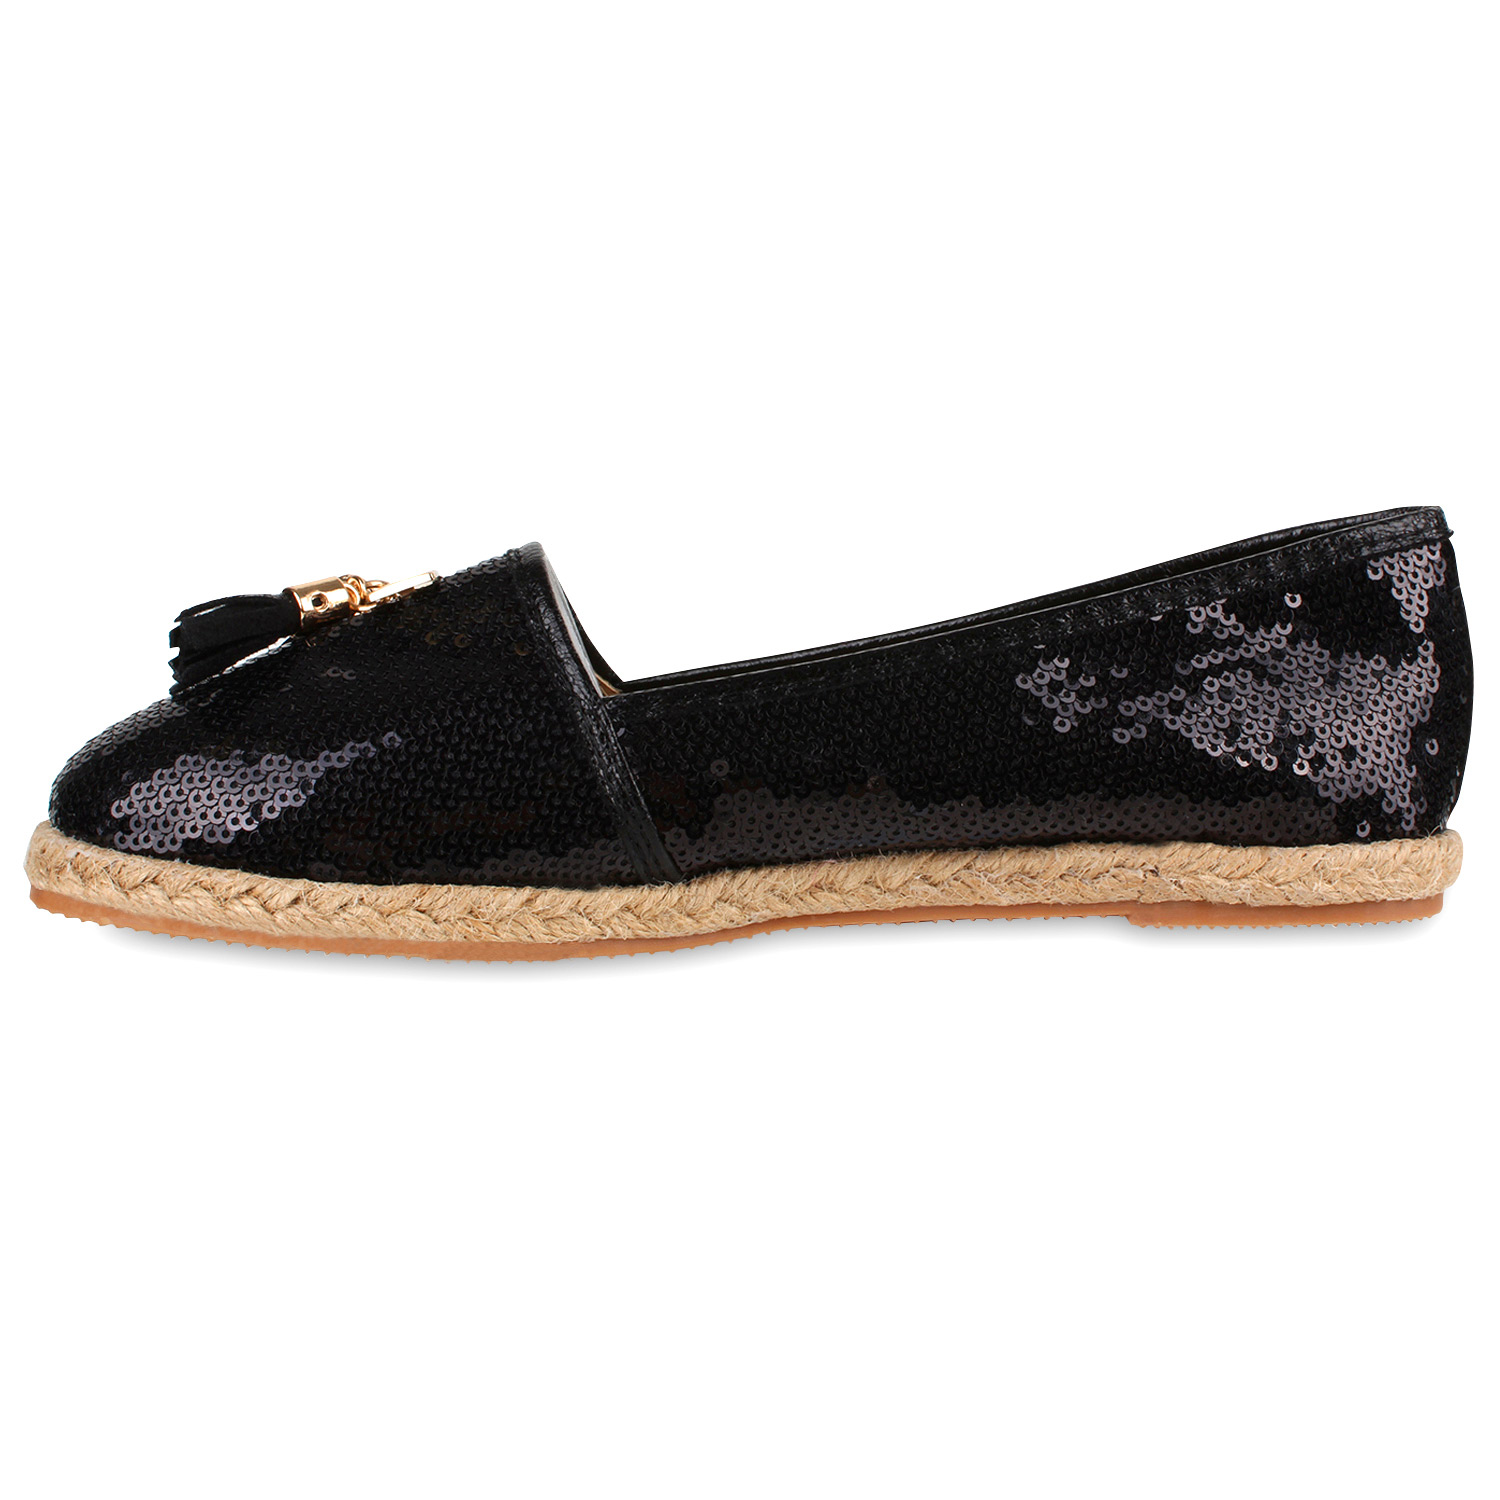 damen espadrilles pailletten bast quasten beach schuhe 79113 new look ebay. Black Bedroom Furniture Sets. Home Design Ideas